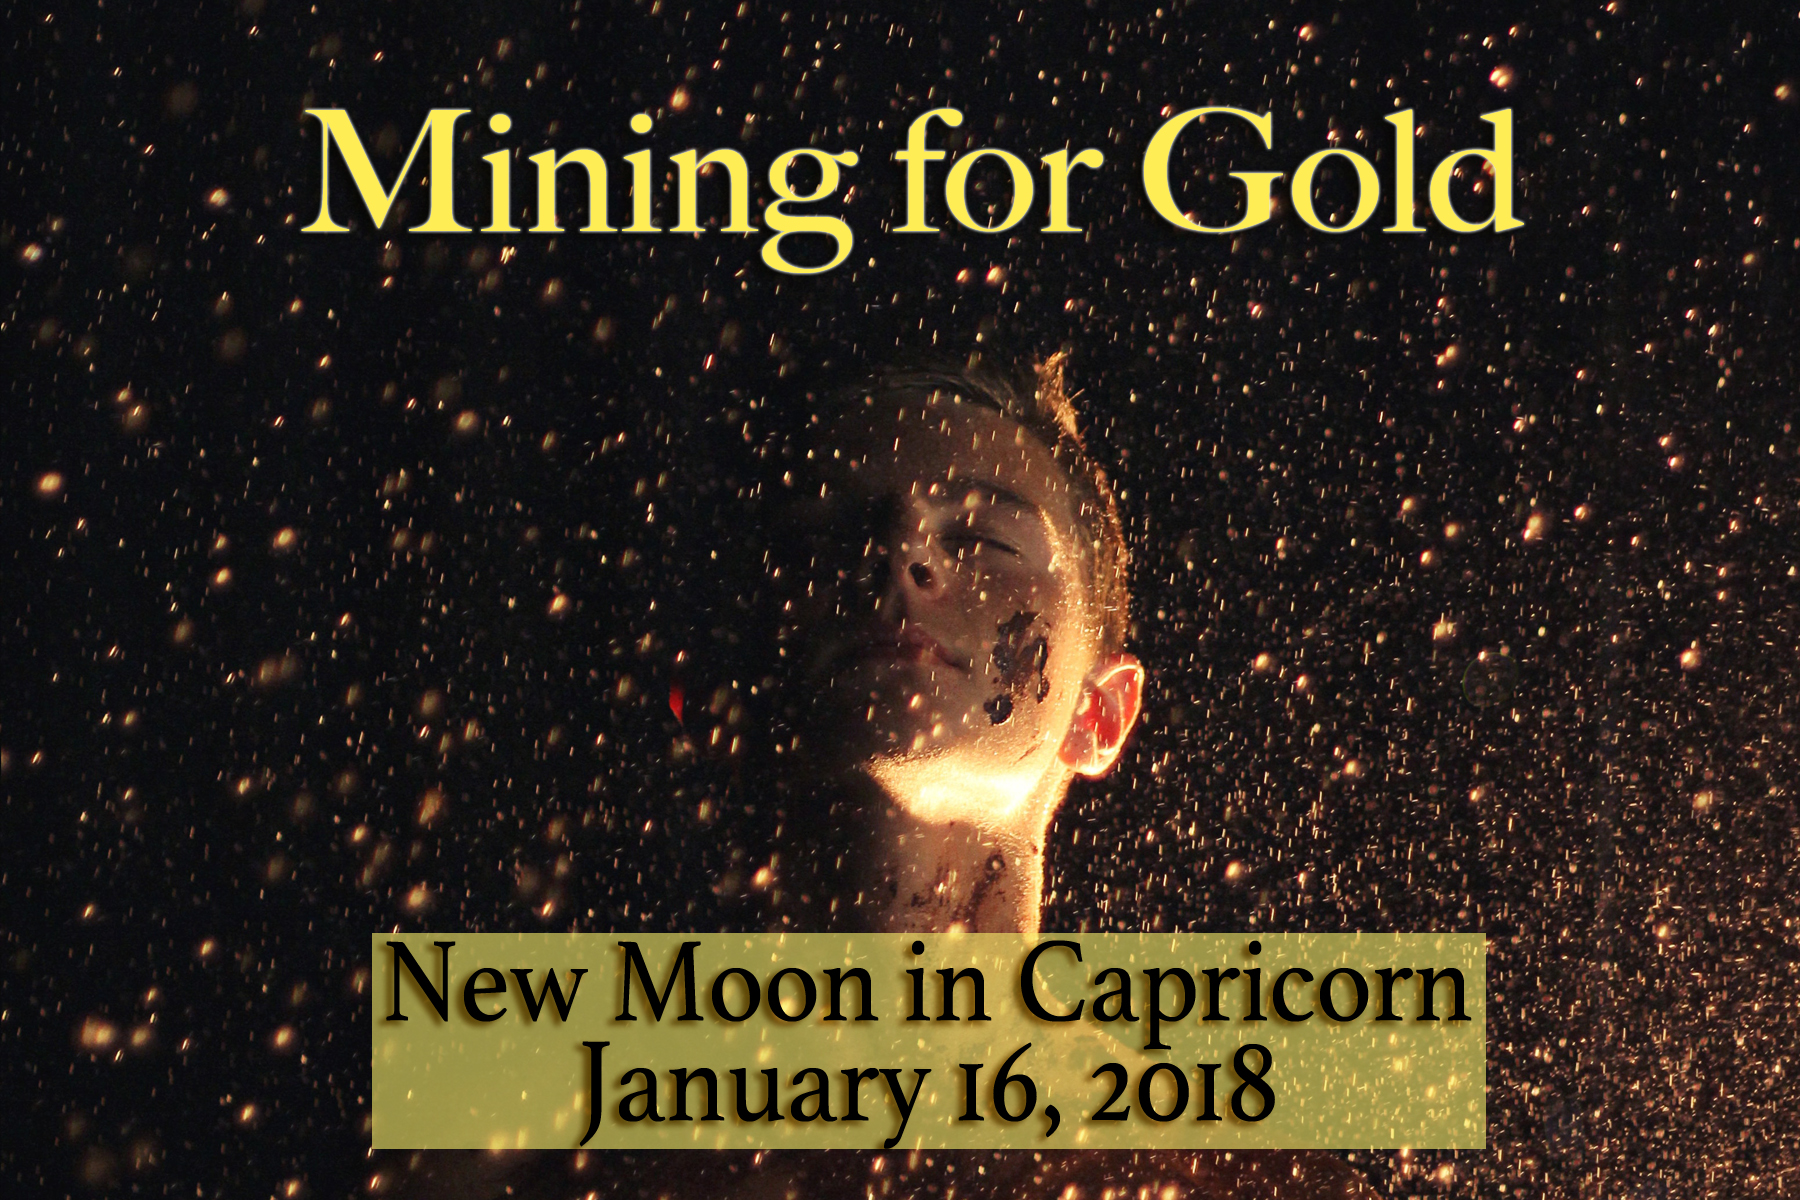 New Moon in Capricorn: Mining for Gold